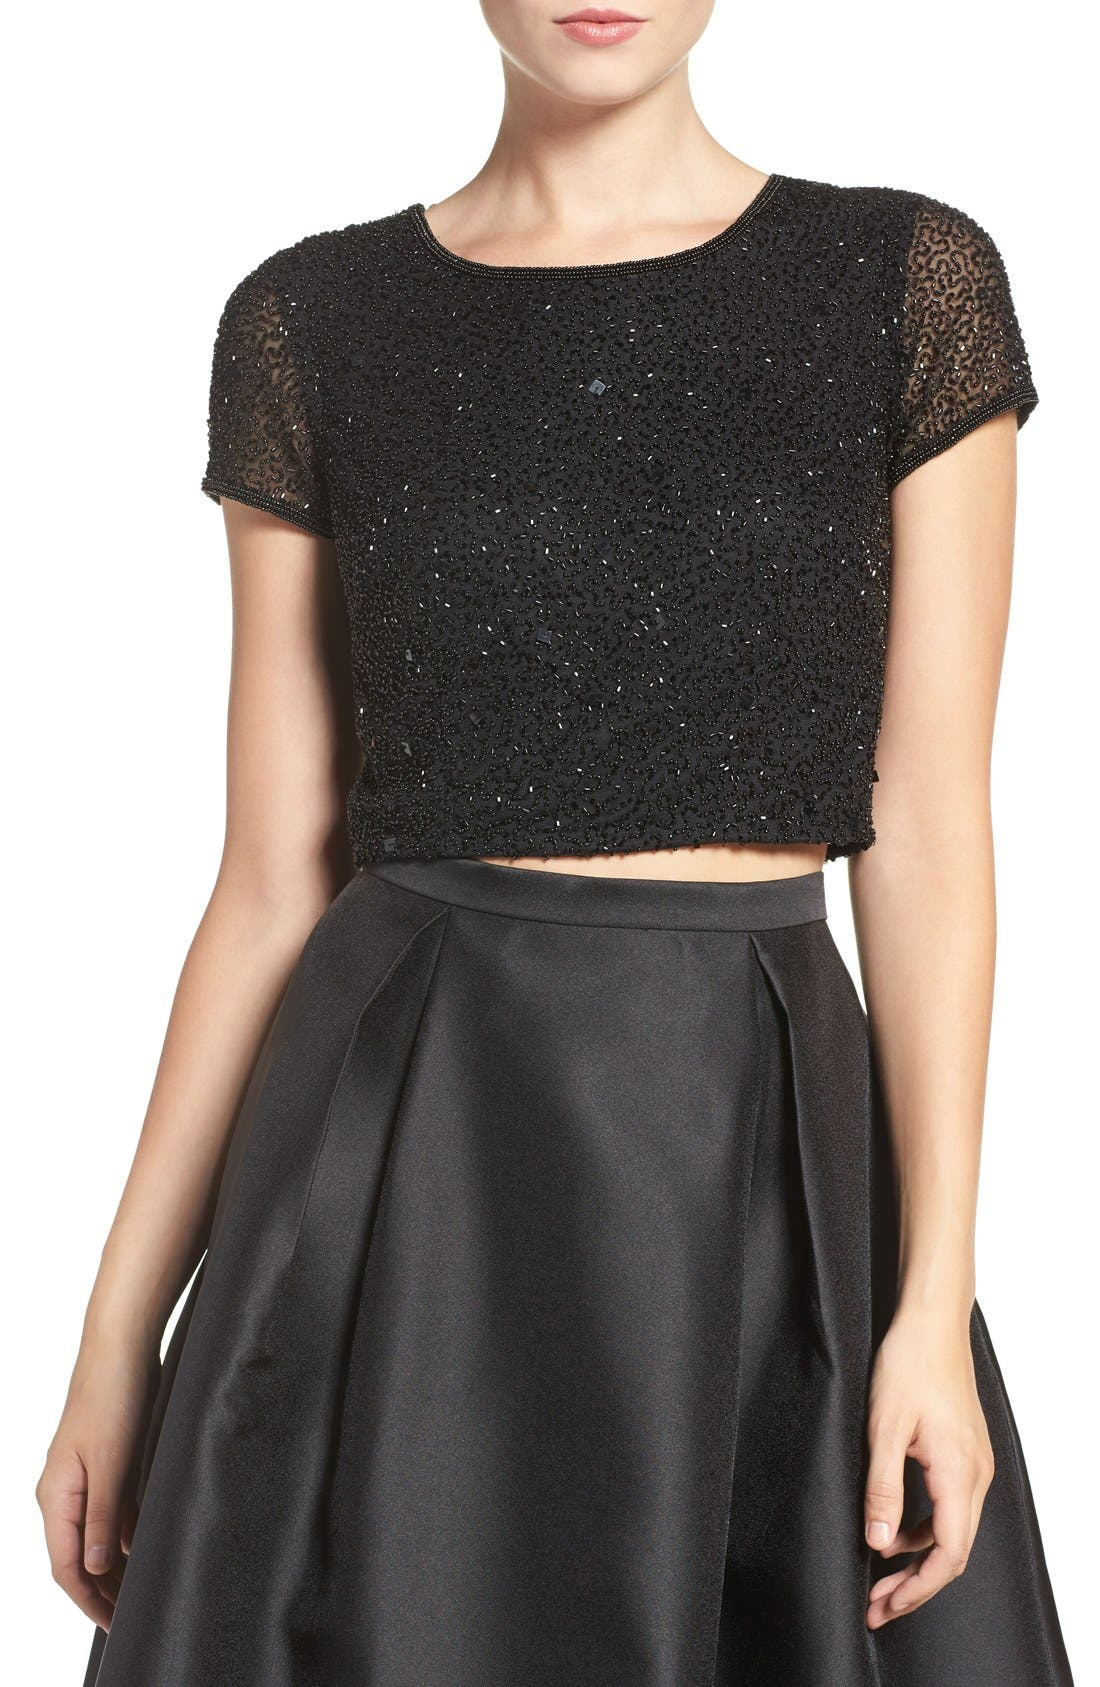 Alternate Image 1 Selected - Adrianna Papell Beaded Crop Top